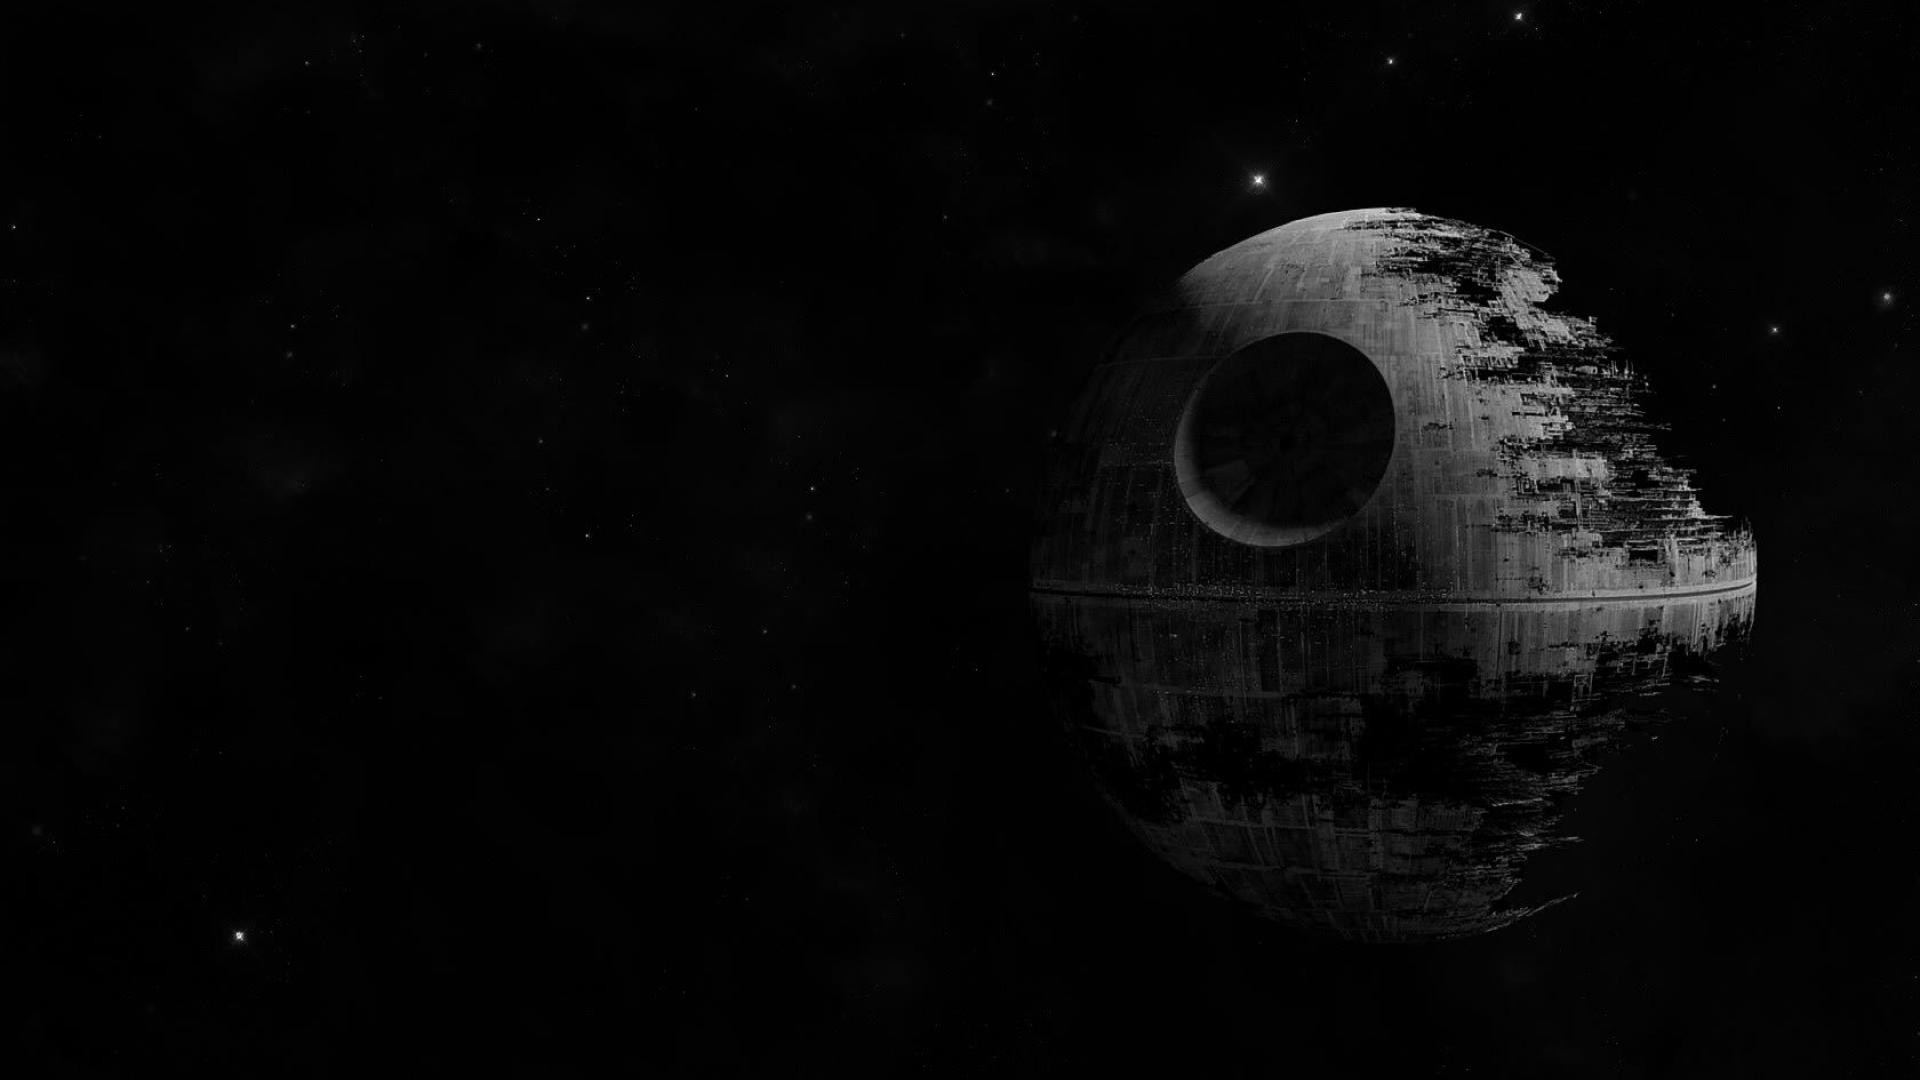 Star Wars Space Wallpaper 70 Images